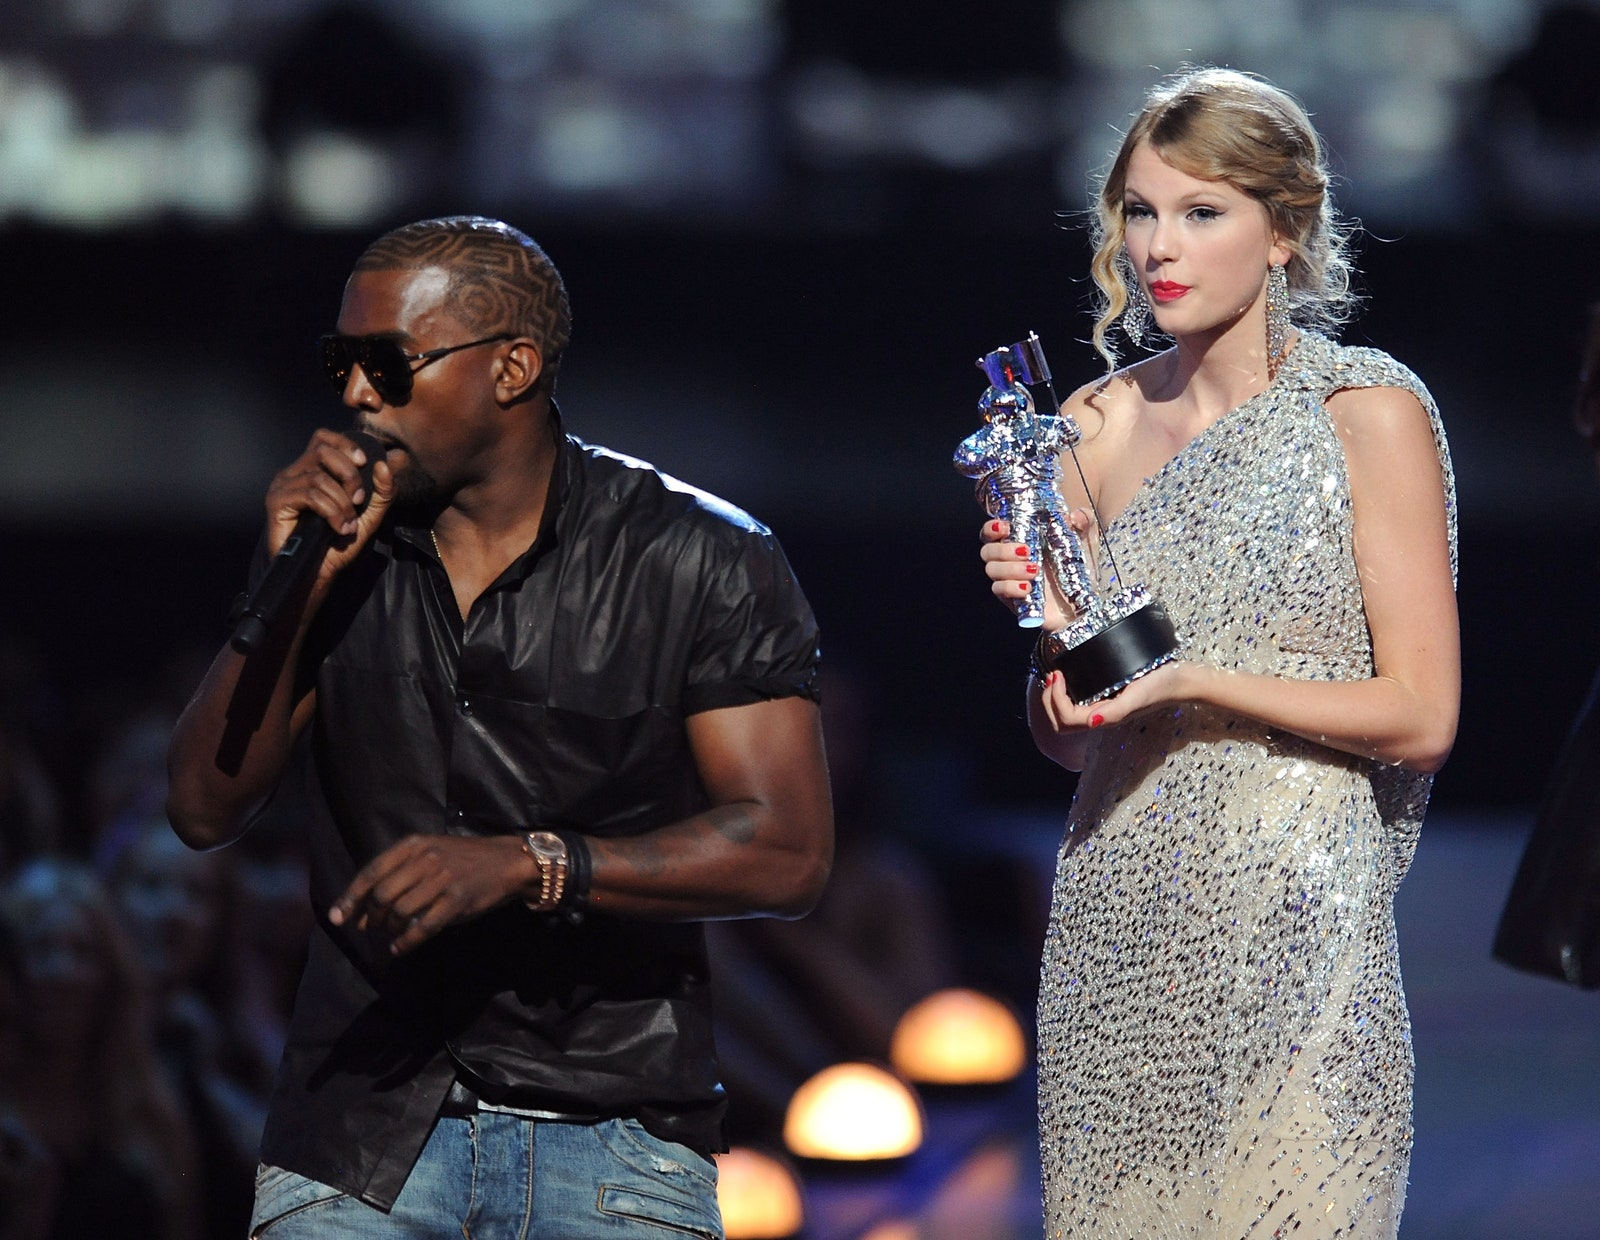 Kanye West takes the microphone from Taylor Swift and speaks onstage during the 2009 MTV Video Music Awards.